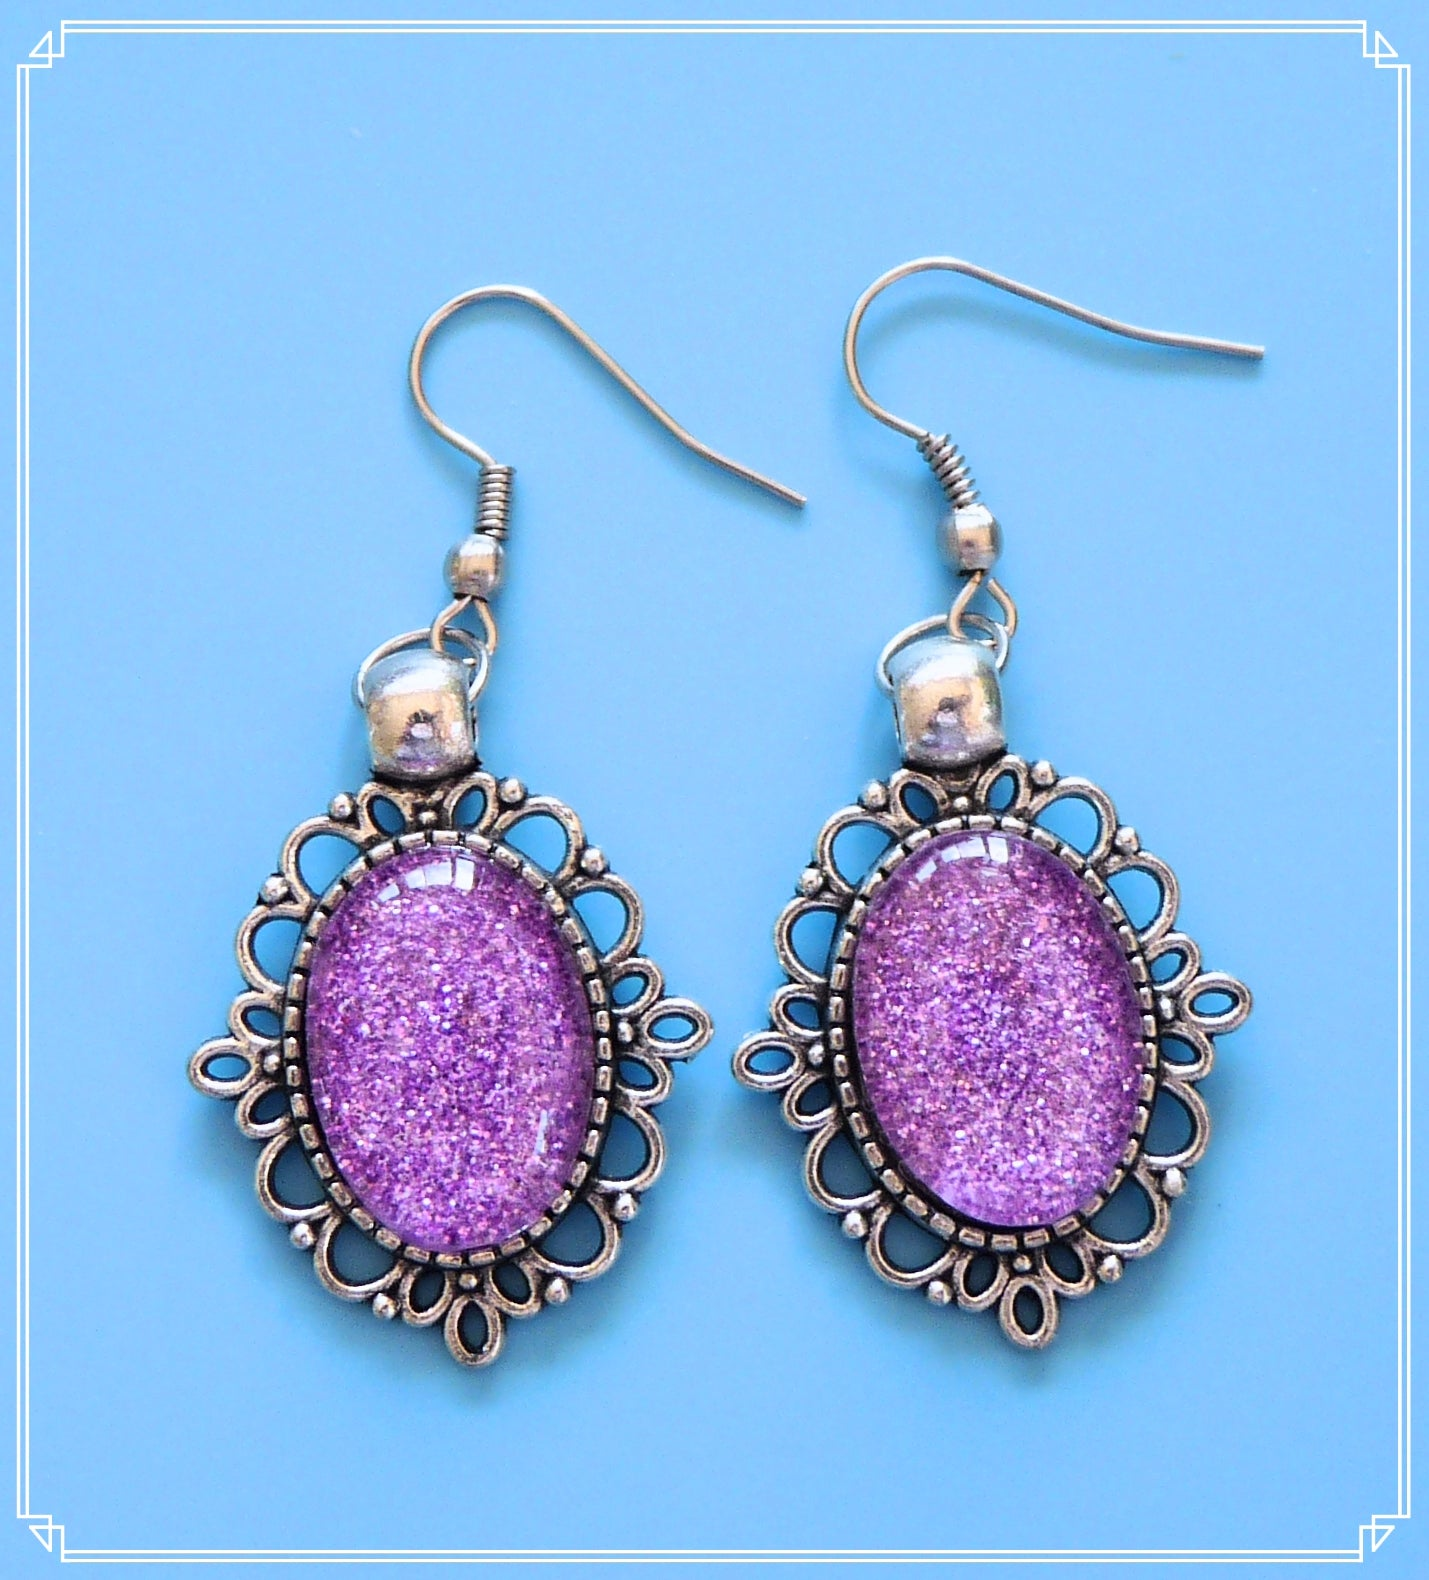 The purple glitter drop earrings in silver setting are part of my Colour Your World collection.